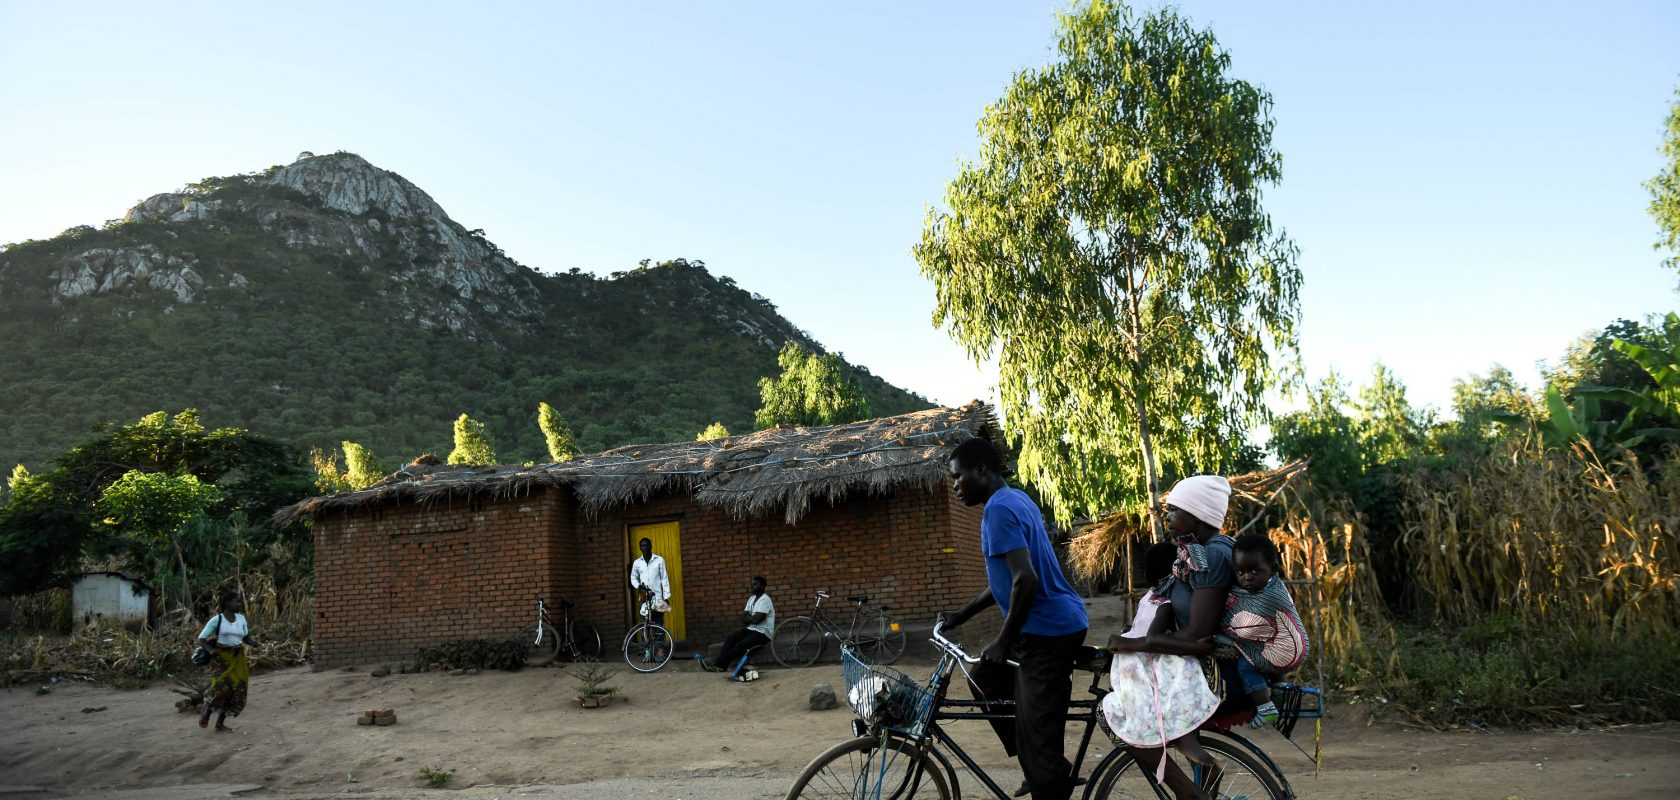 People on a bike in central Malawi